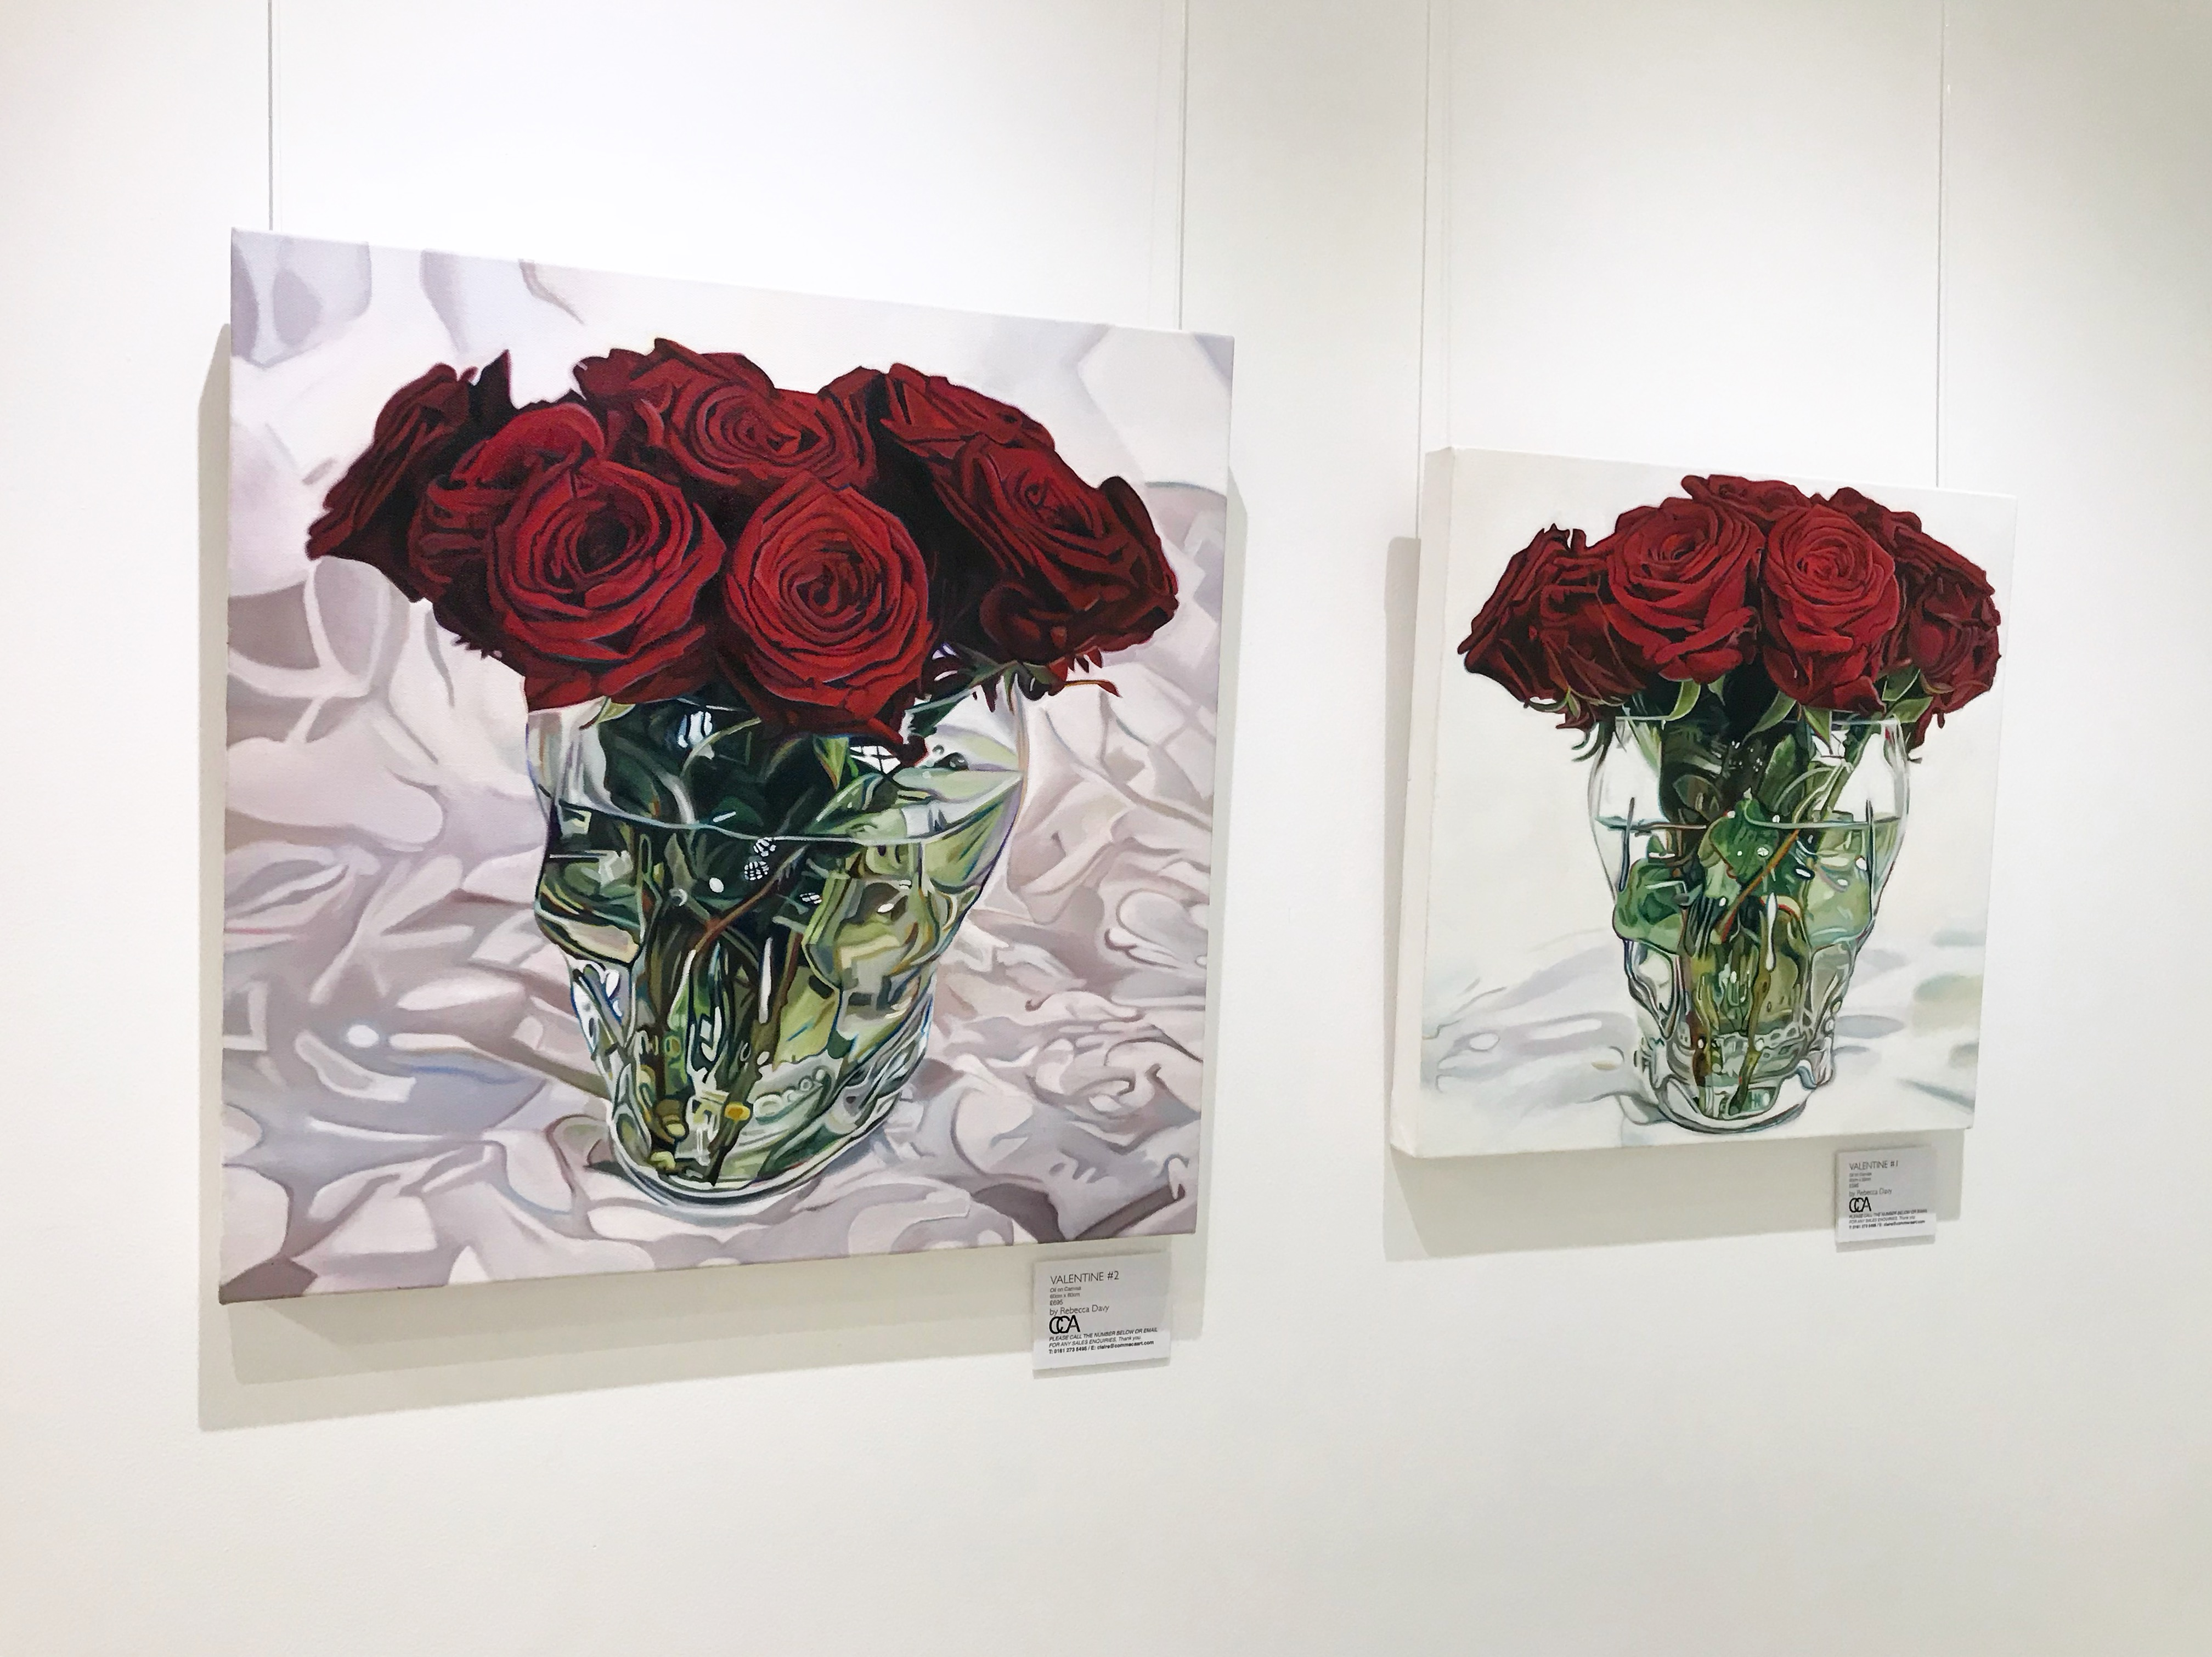 VALENTINE PAINTINGS at The Lowry Hotel